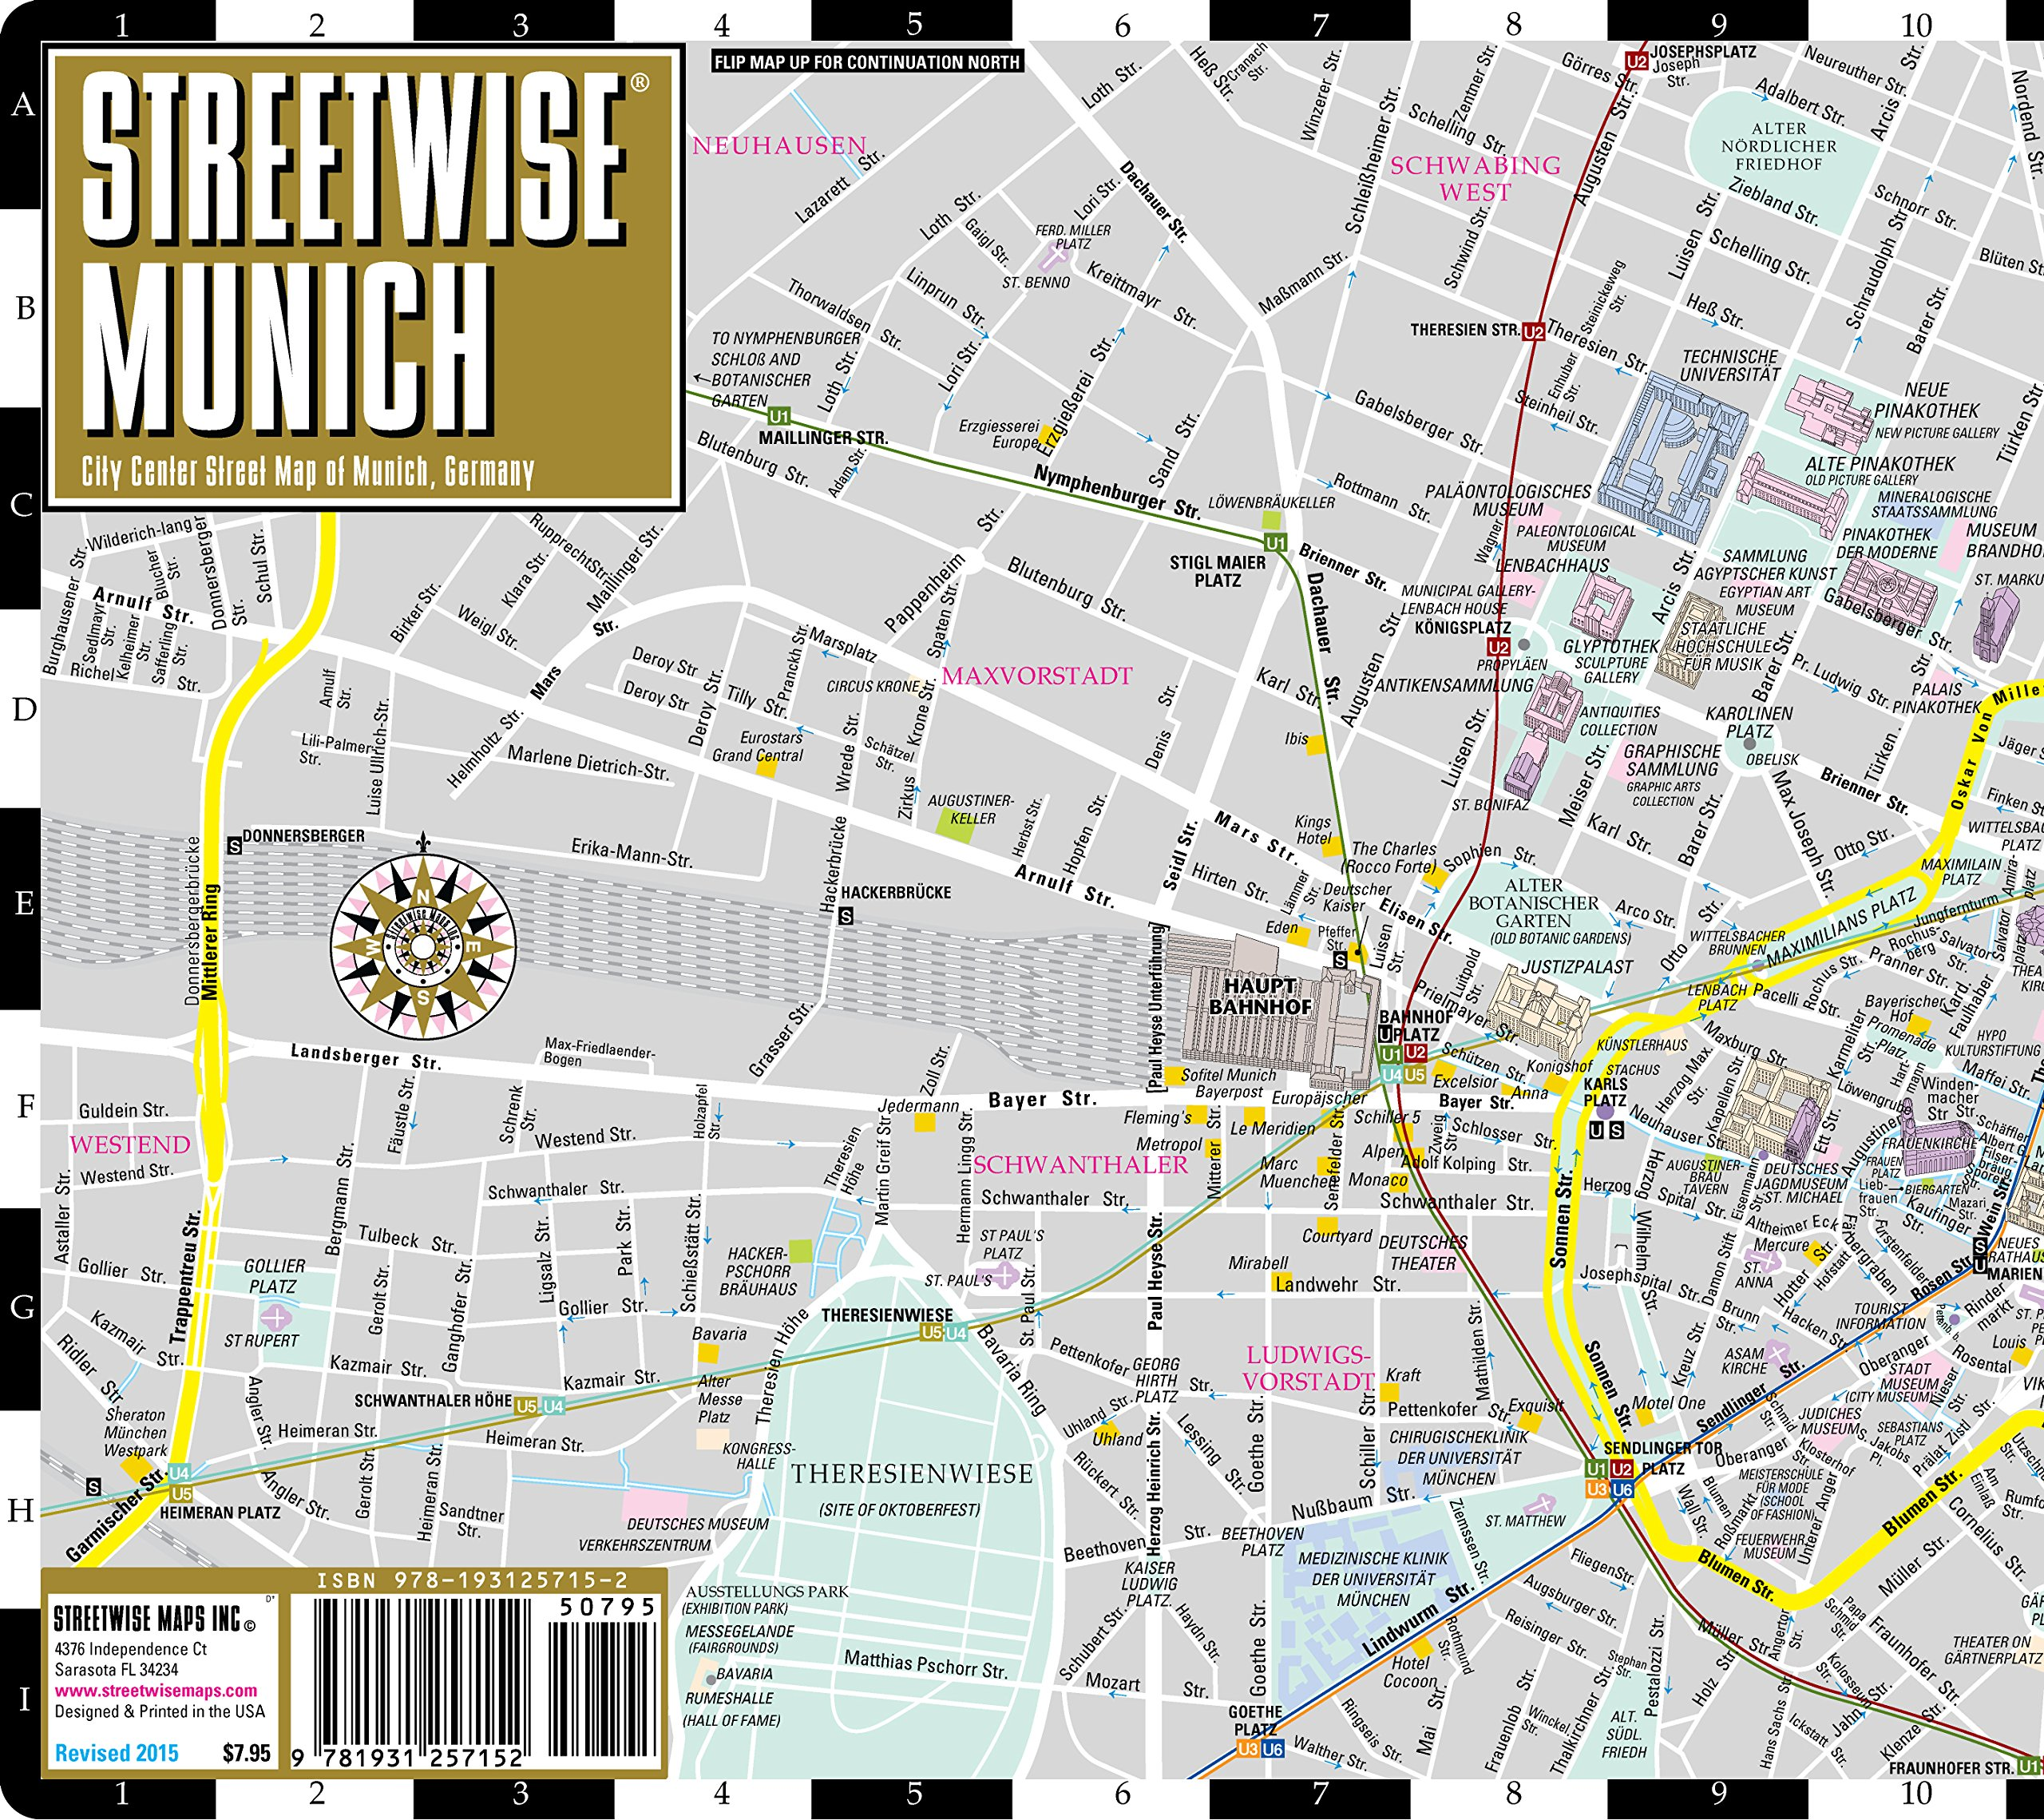 Streetwise Munich Map Laminated City Center Street Map of Munich